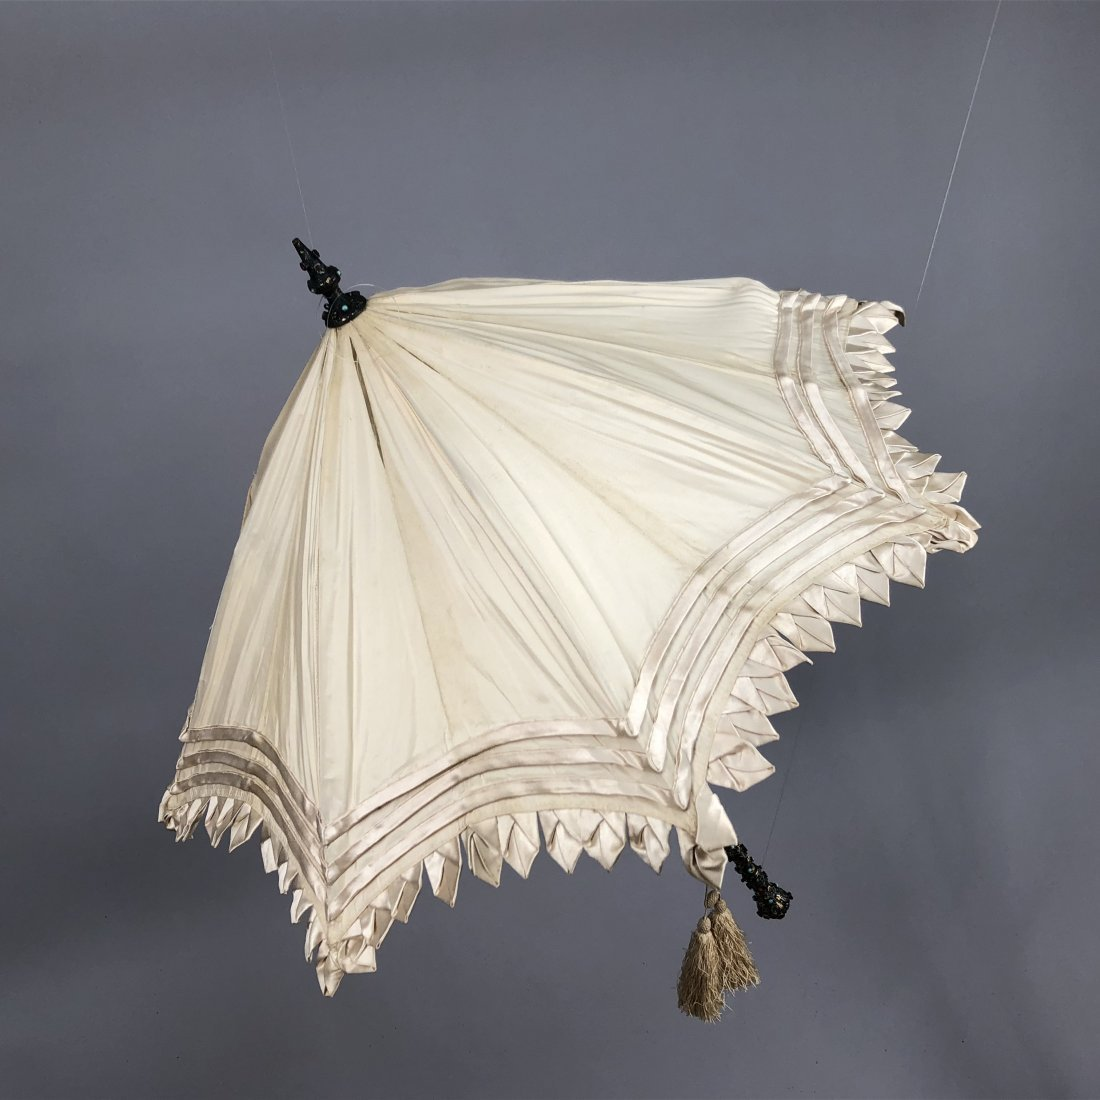 SILK PARASOL with JEWELED and IVORY HANDLE, 1850 - 1860 - 3